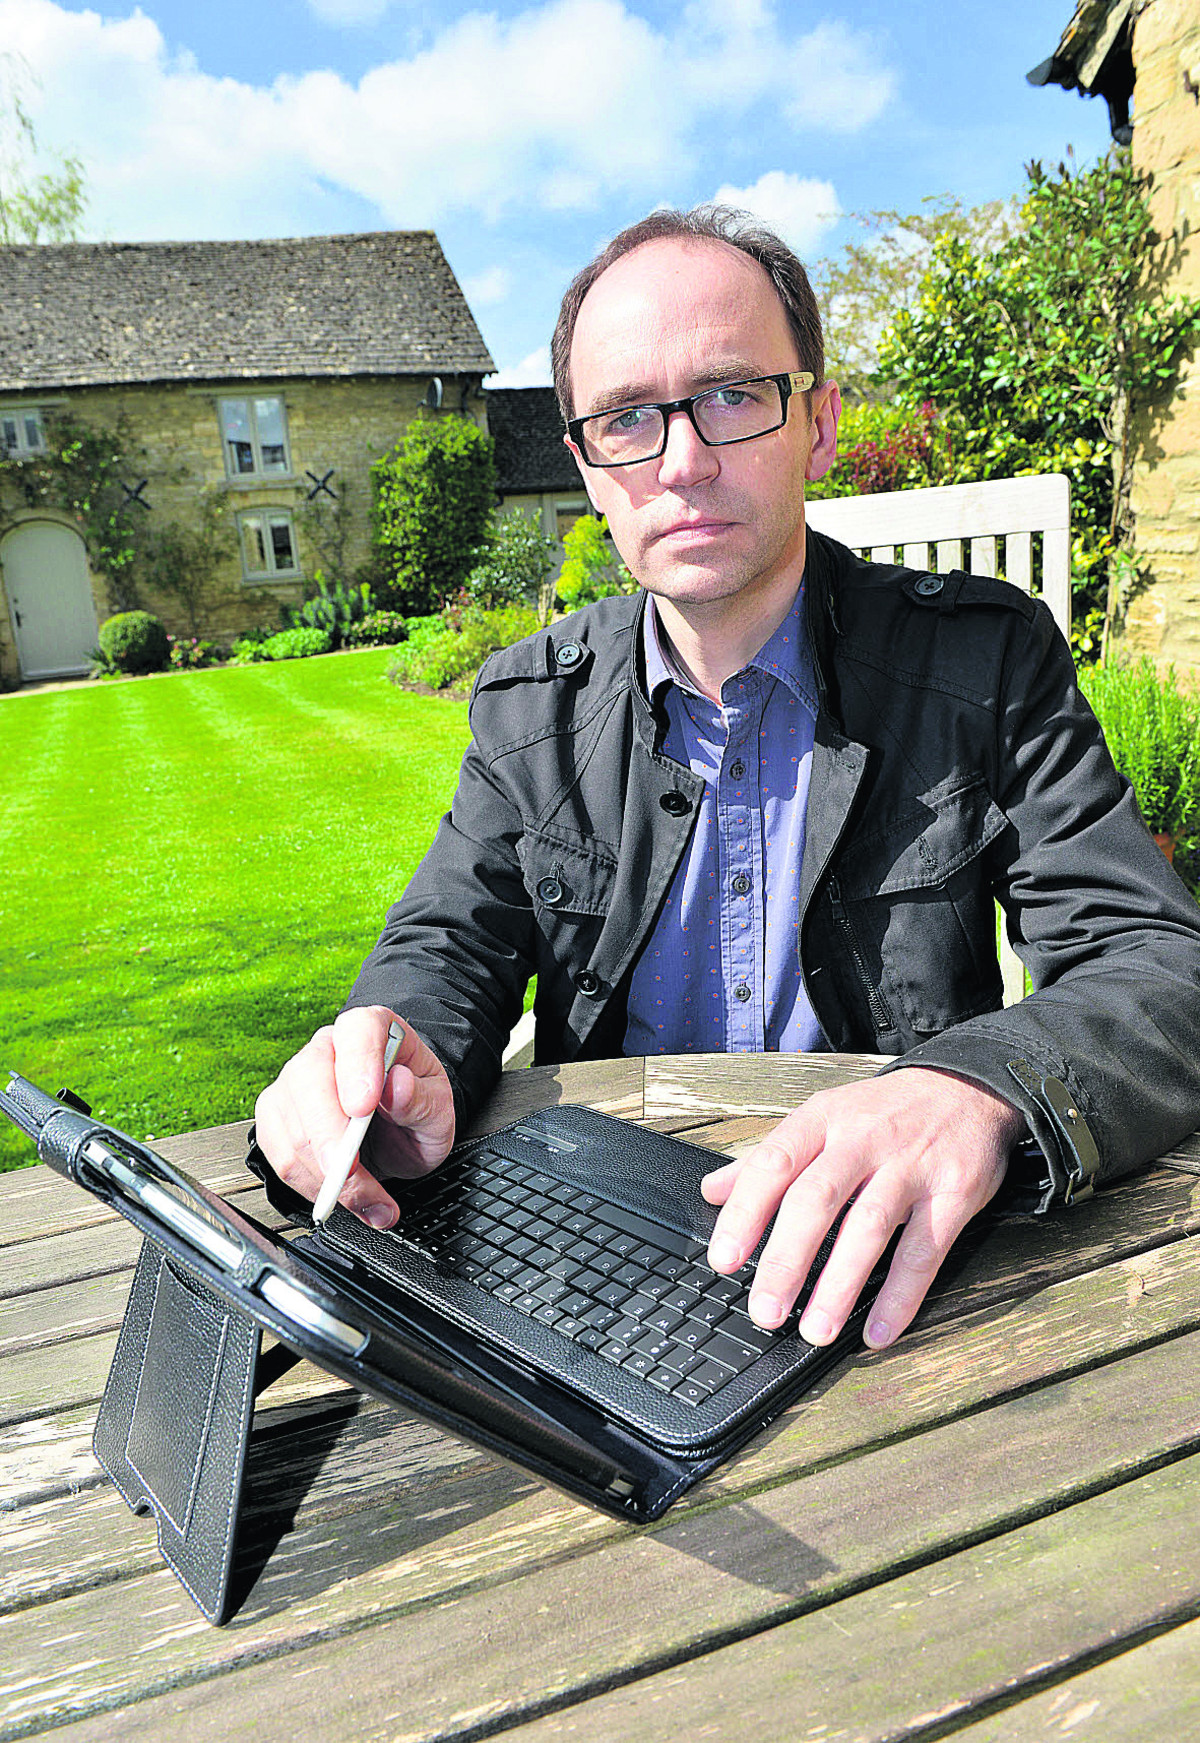 Getting up to speed with rural broadband